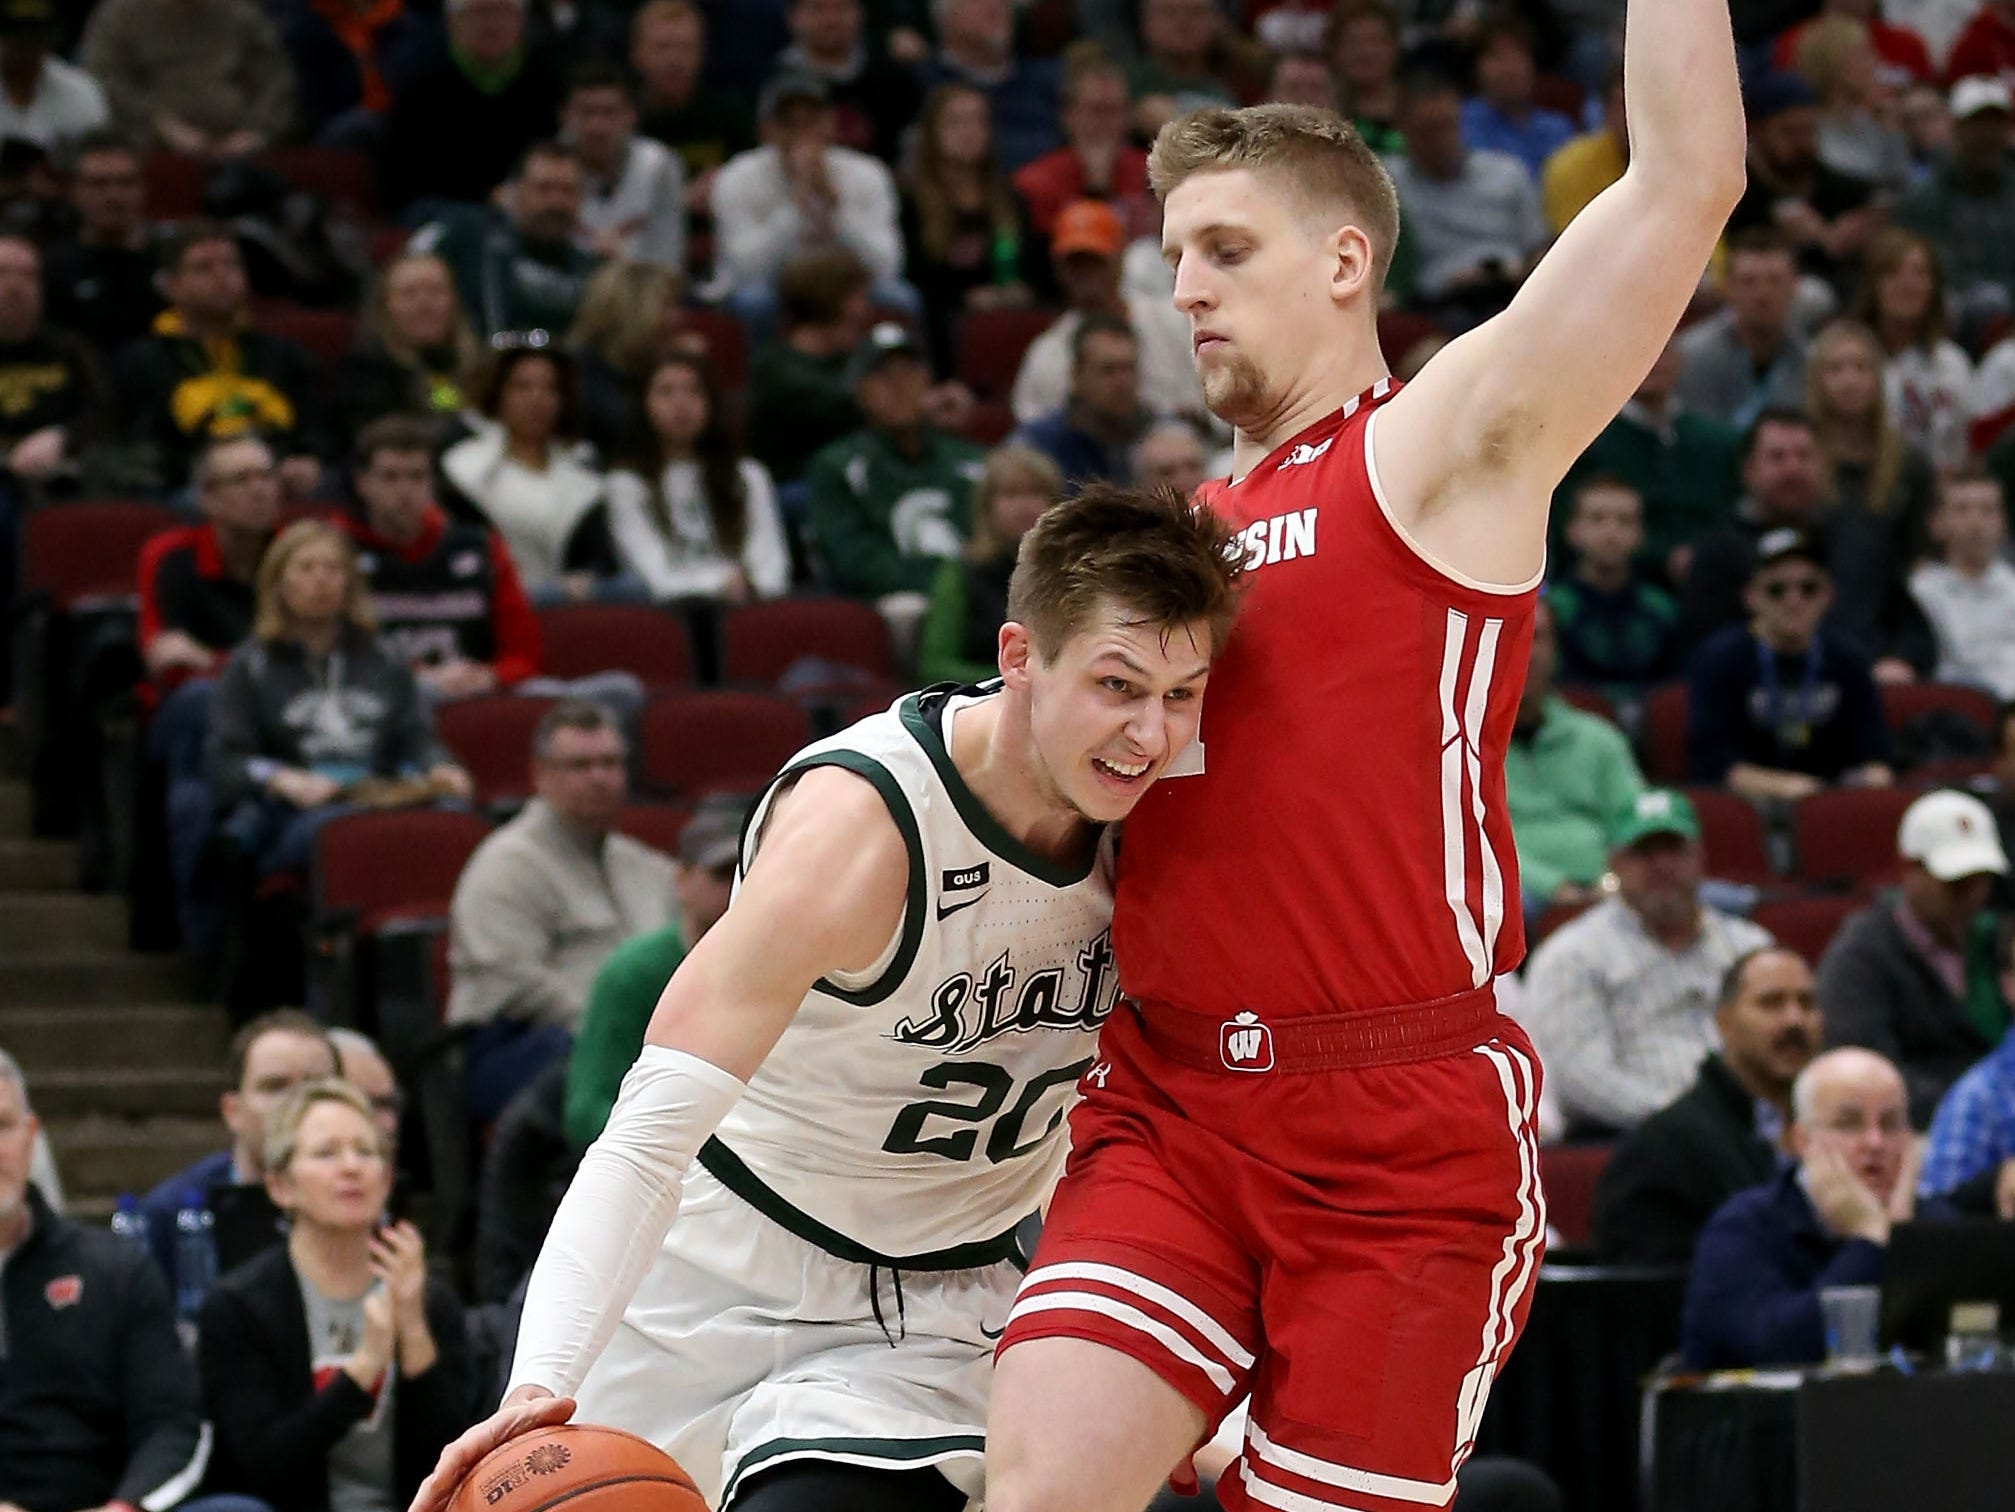 Matt McQuaid #20 of the Michigan State Spartans dribbles the ball while being guarded by Brevin Pritzl #1 of the Wisconsin Badgers in the first half during the semifinals of the Big Ten Basketball Tournament at the United Center on March 16, 2019 in Chicago, Illinois.